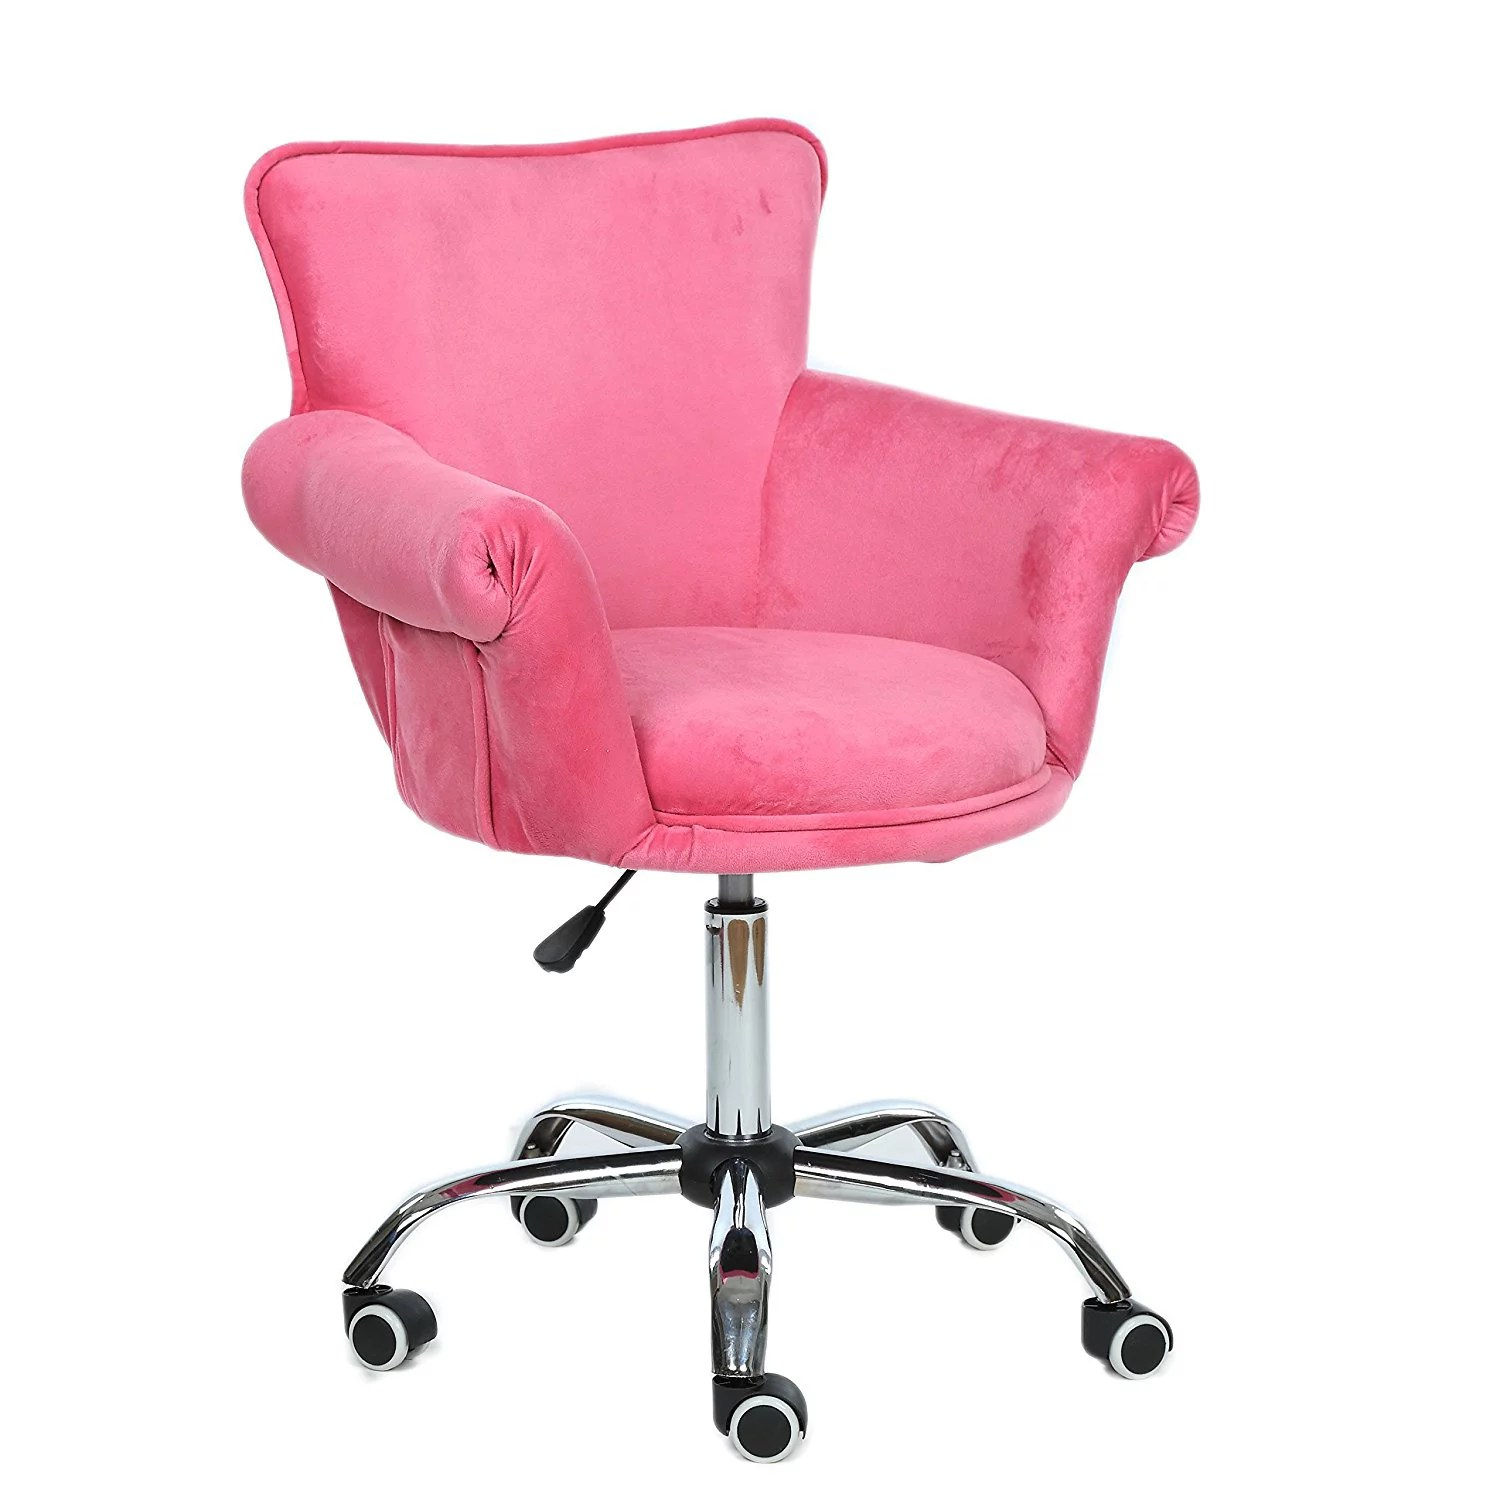 magshion deluxe microfiber office desk chair bar stool beauty nail salon spa vanity seat pink